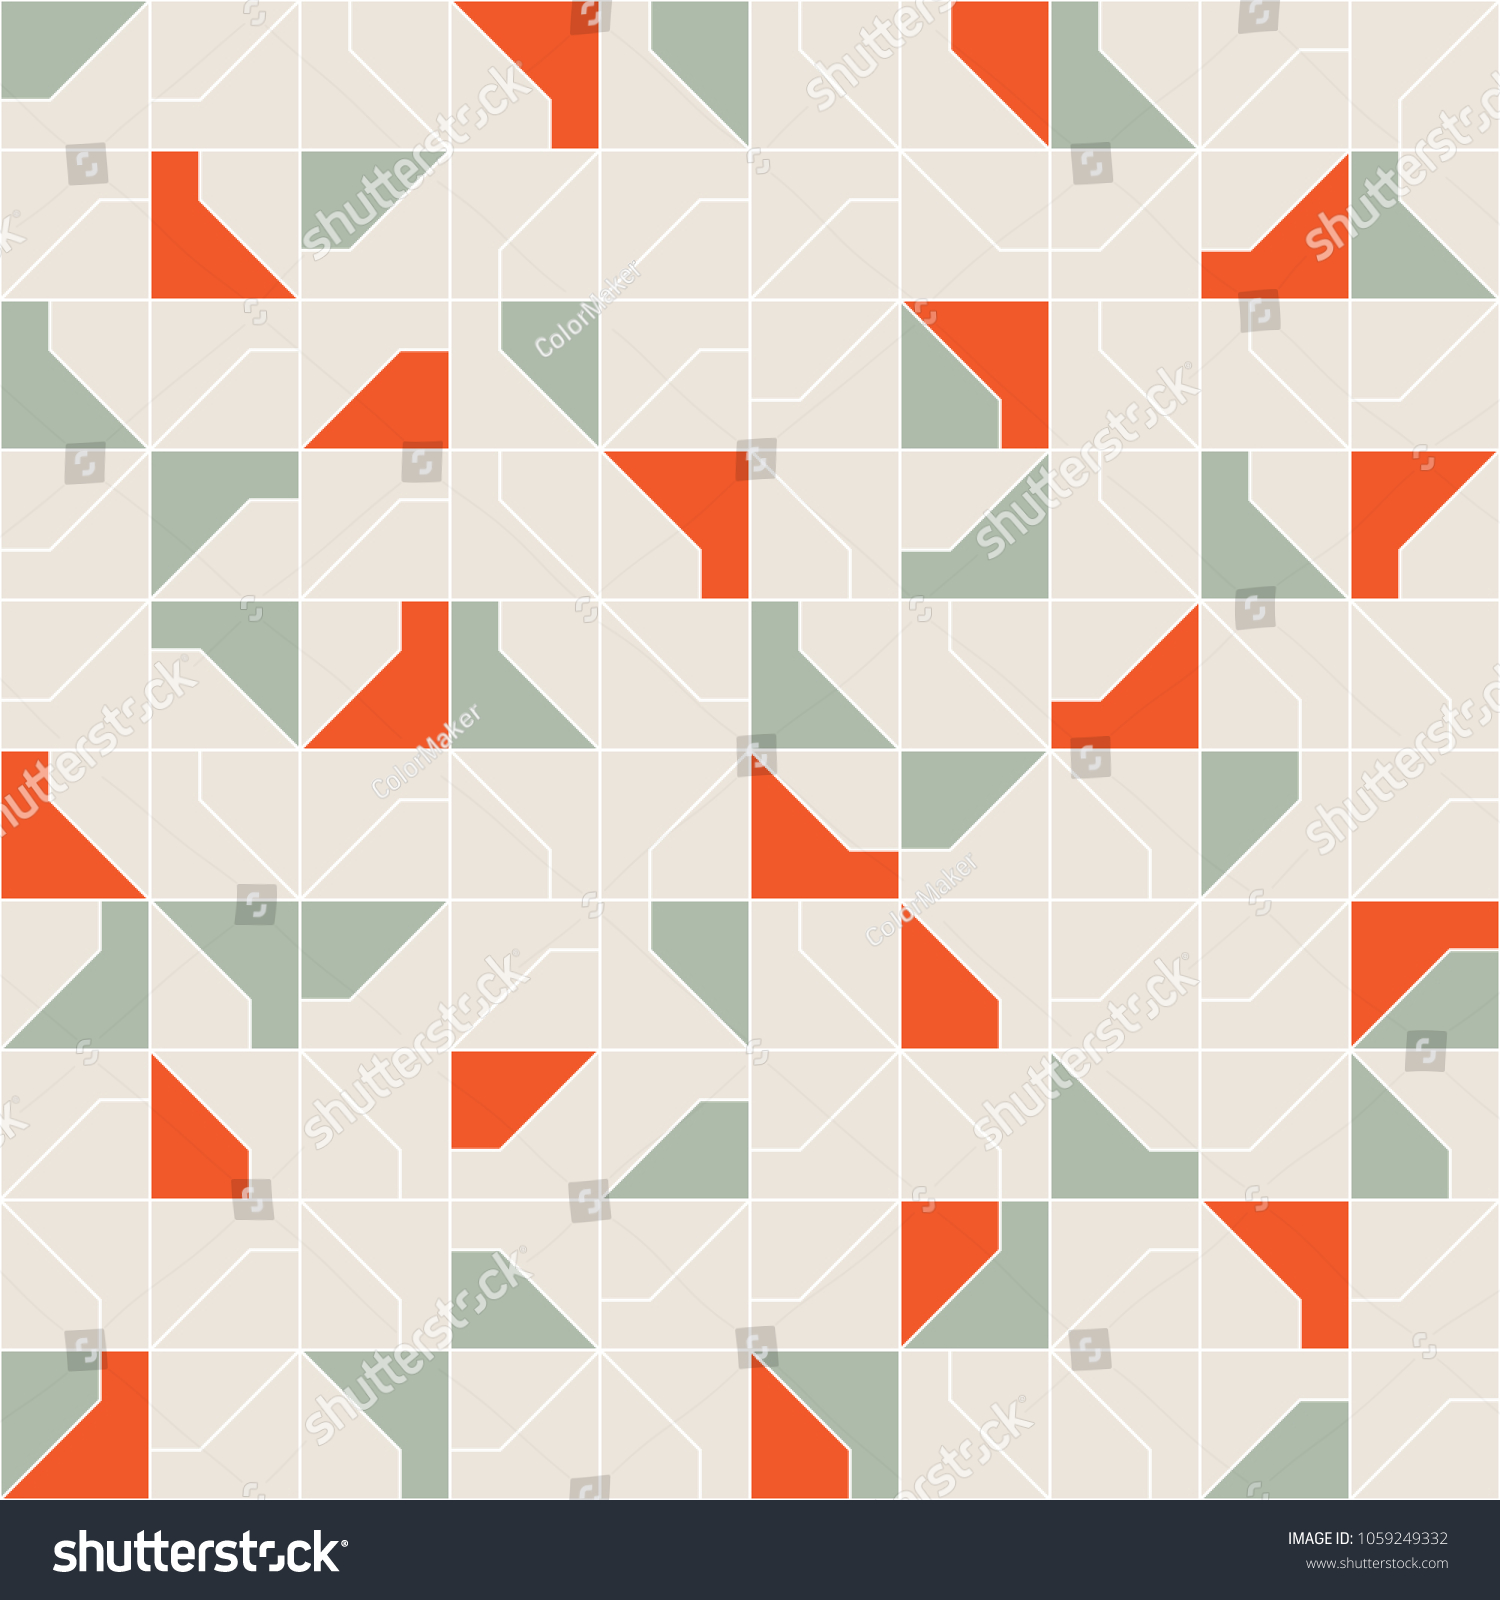 Abstract Modernist Style Geometric Tiles Seamless Pattern Design, Repeat Background